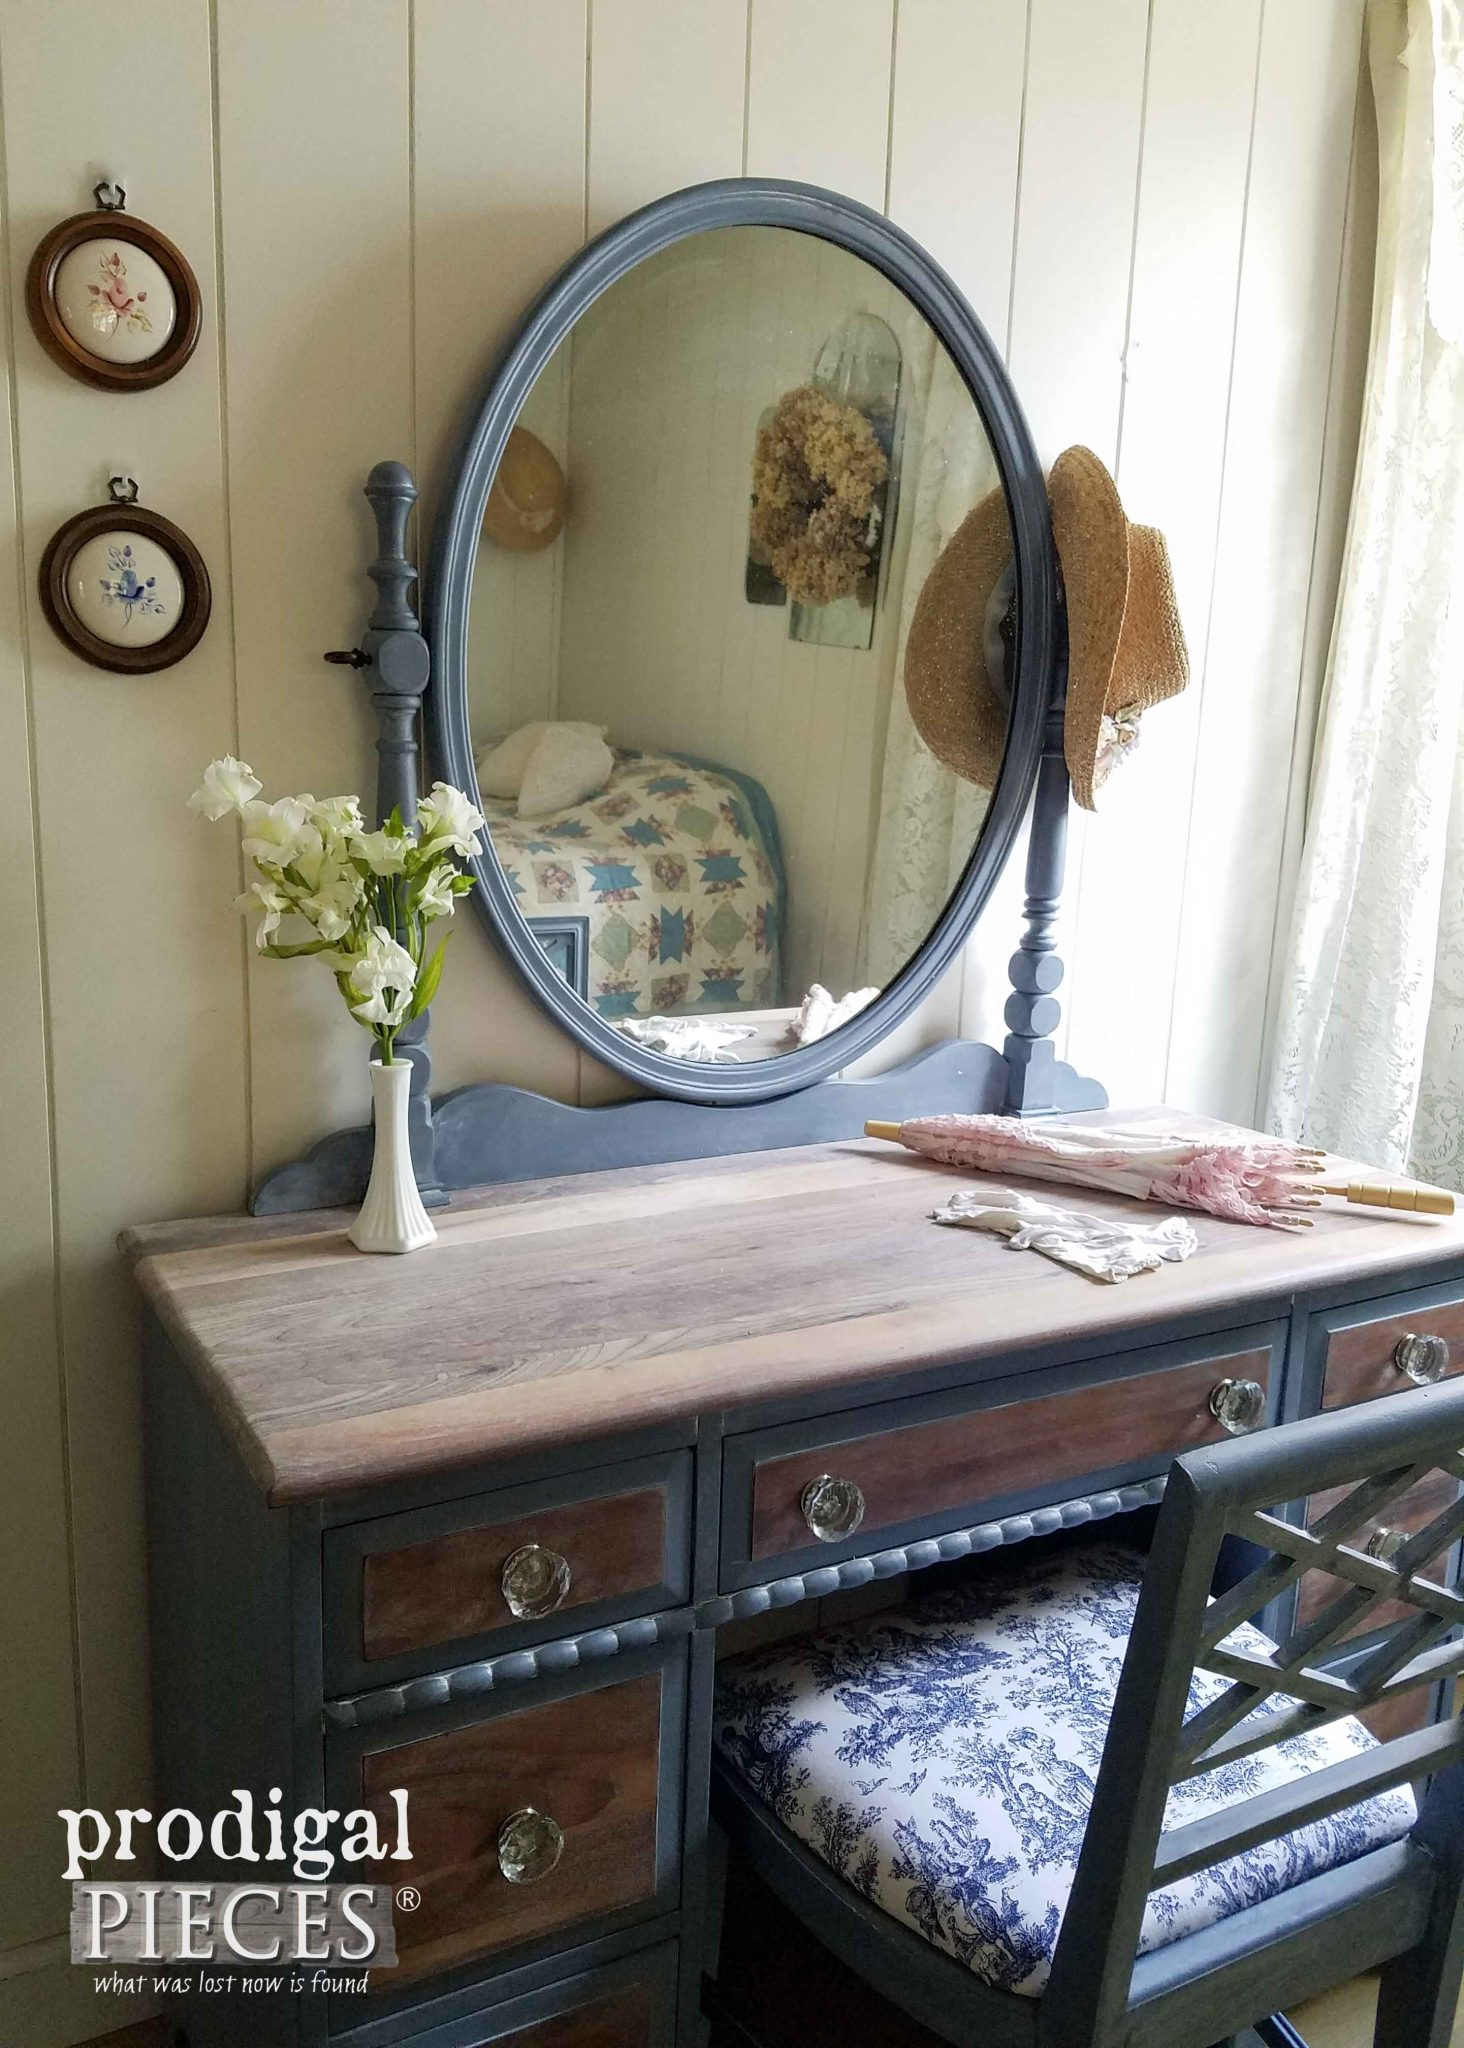 Vintage Vanity Made New with a French Country Cottage Feel by Prodigal Pieces | prodigalpieces.com